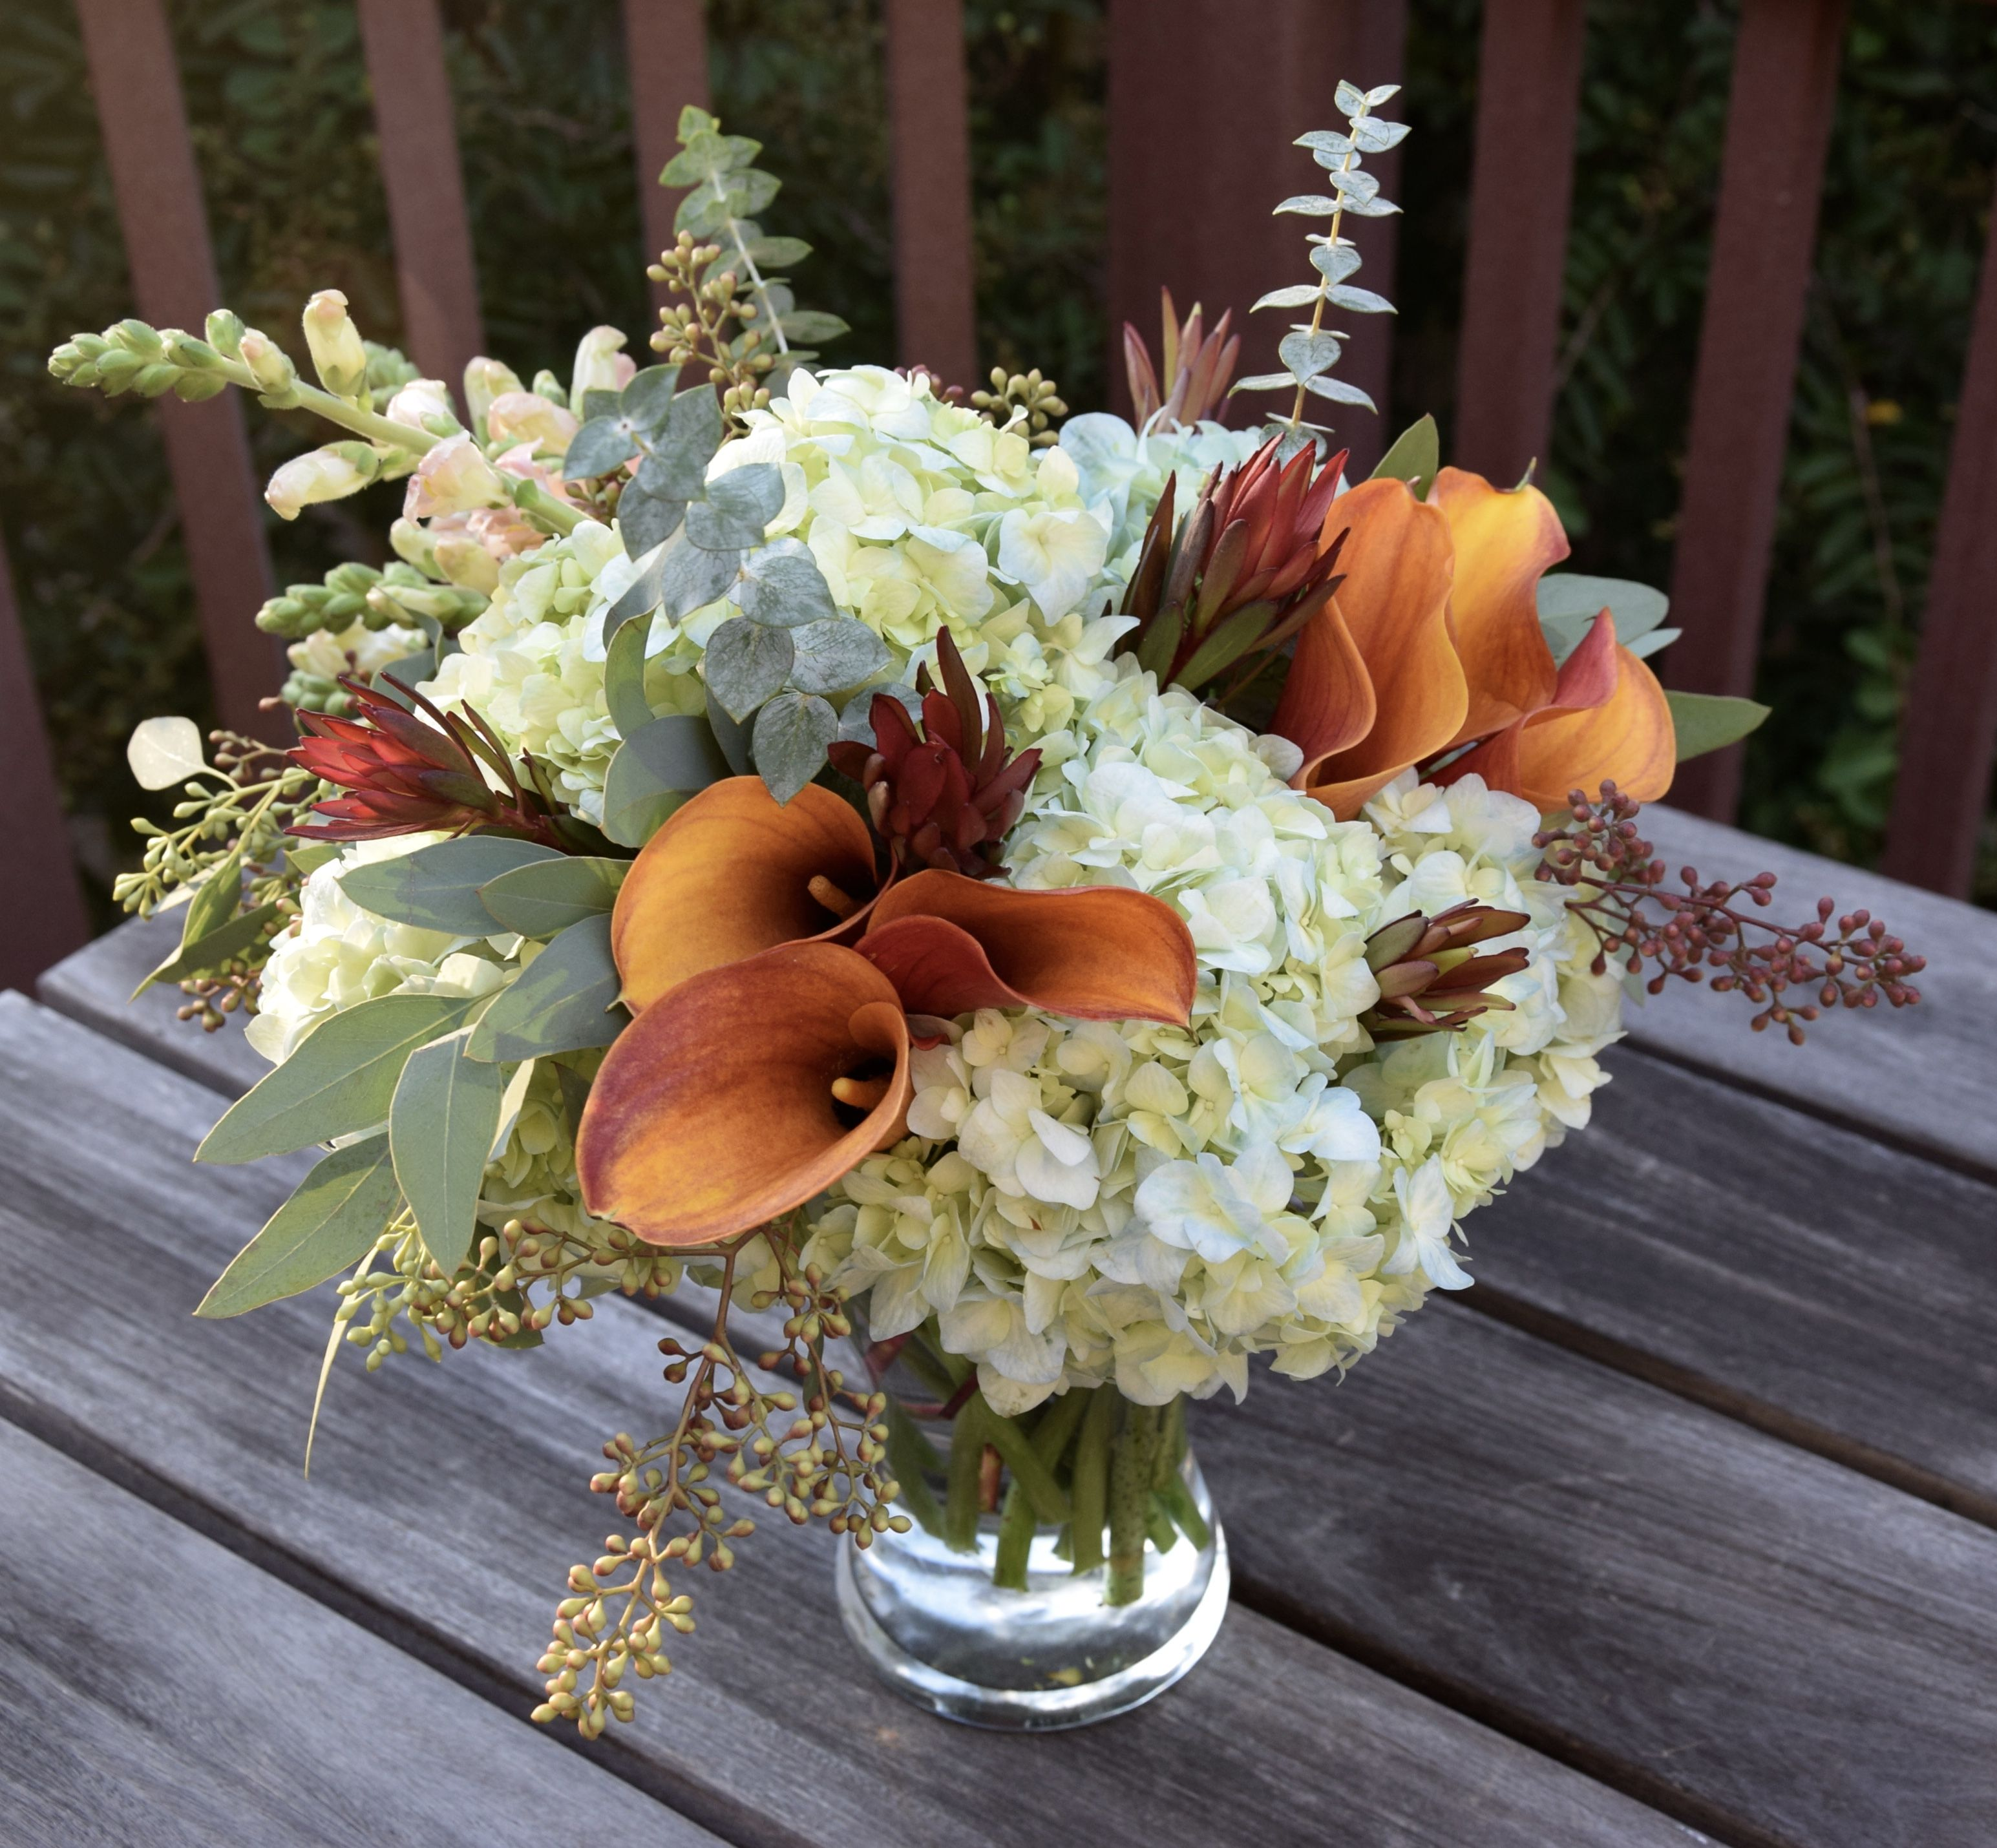 Flower arrangement with burning orange calla lilies and